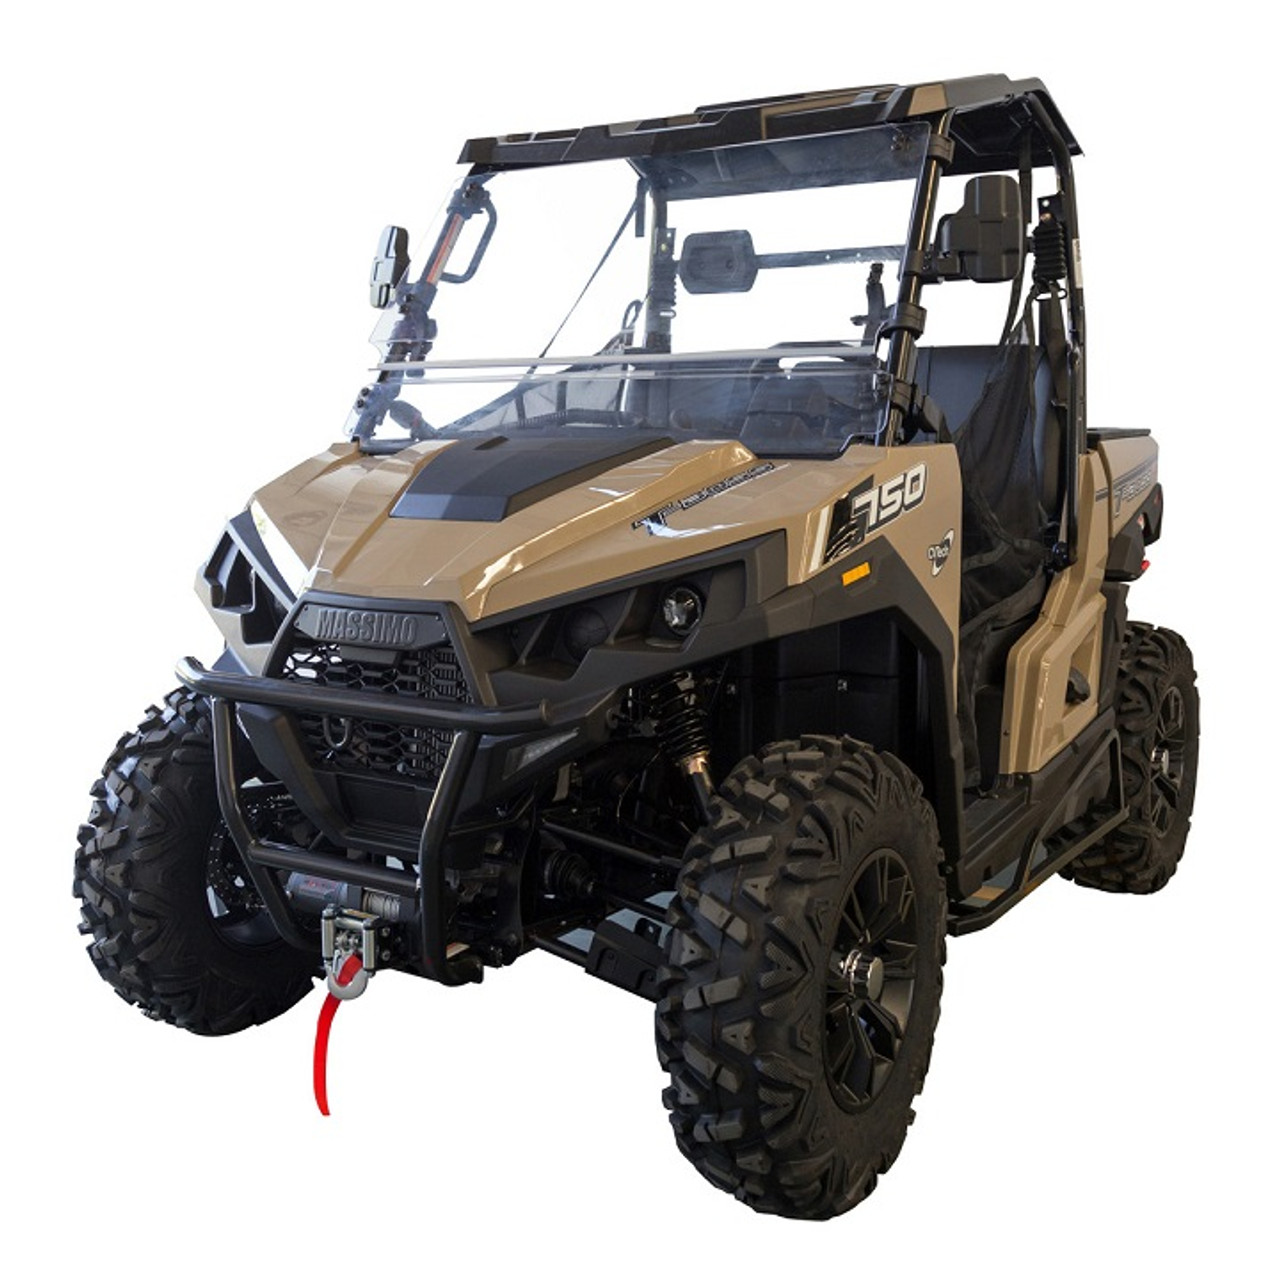 MASSIMO T-BOSS 750 UTV, 694.6CC FOUR STROKE SINGLE CYLINDER